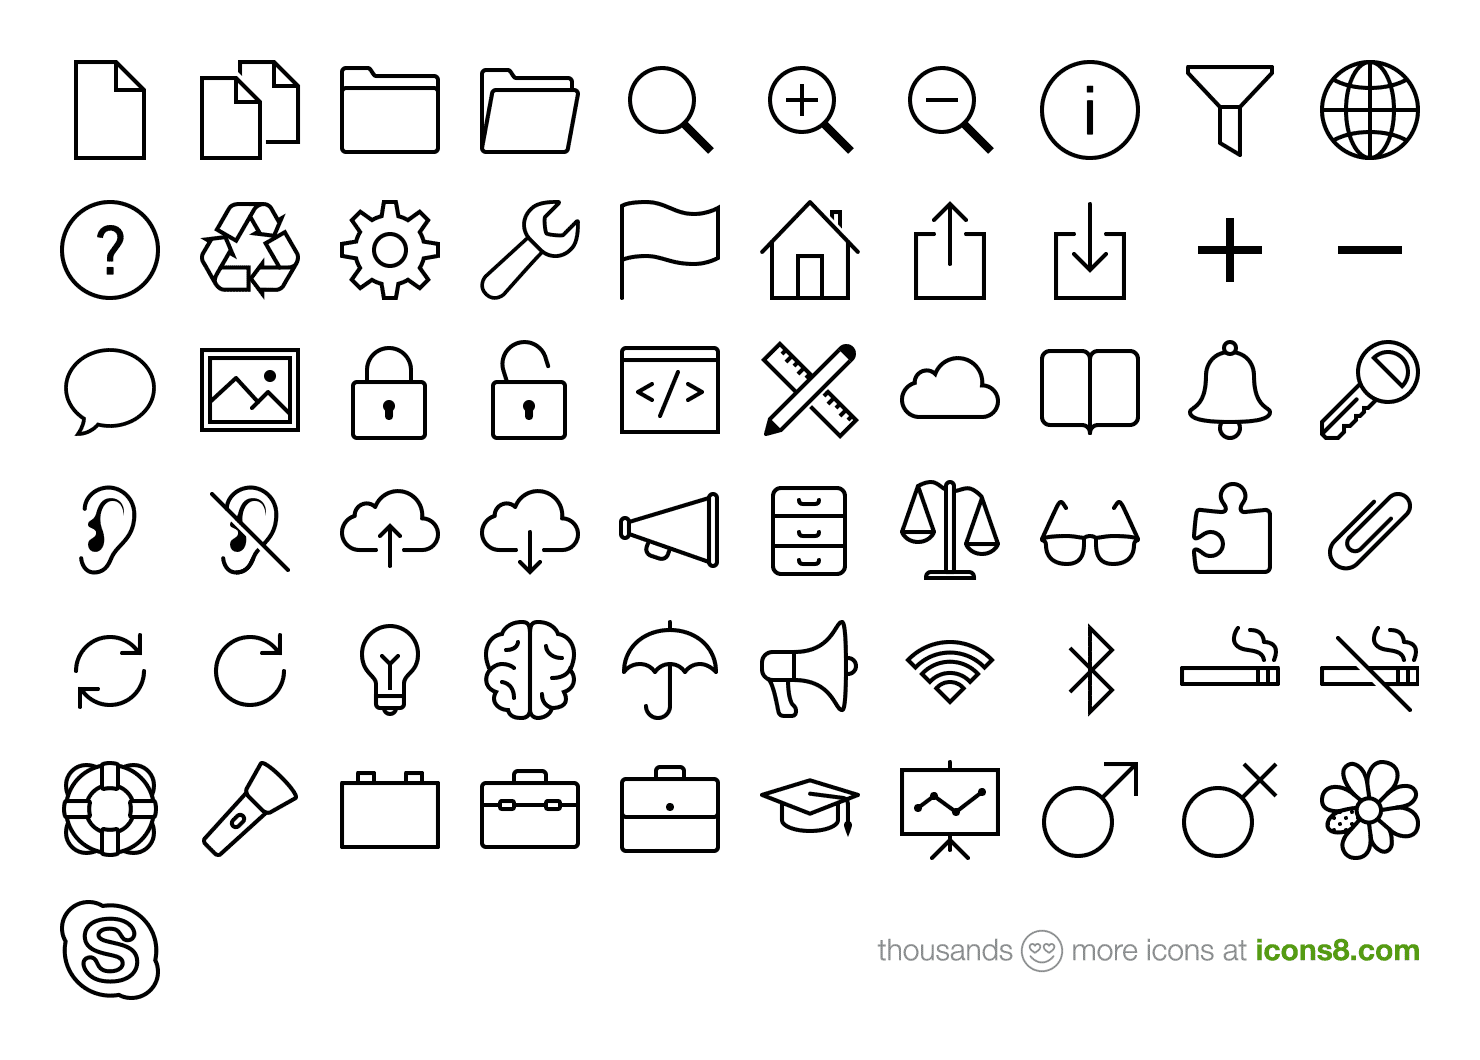 It's hard to find icons designed for iOS7 but here's a few